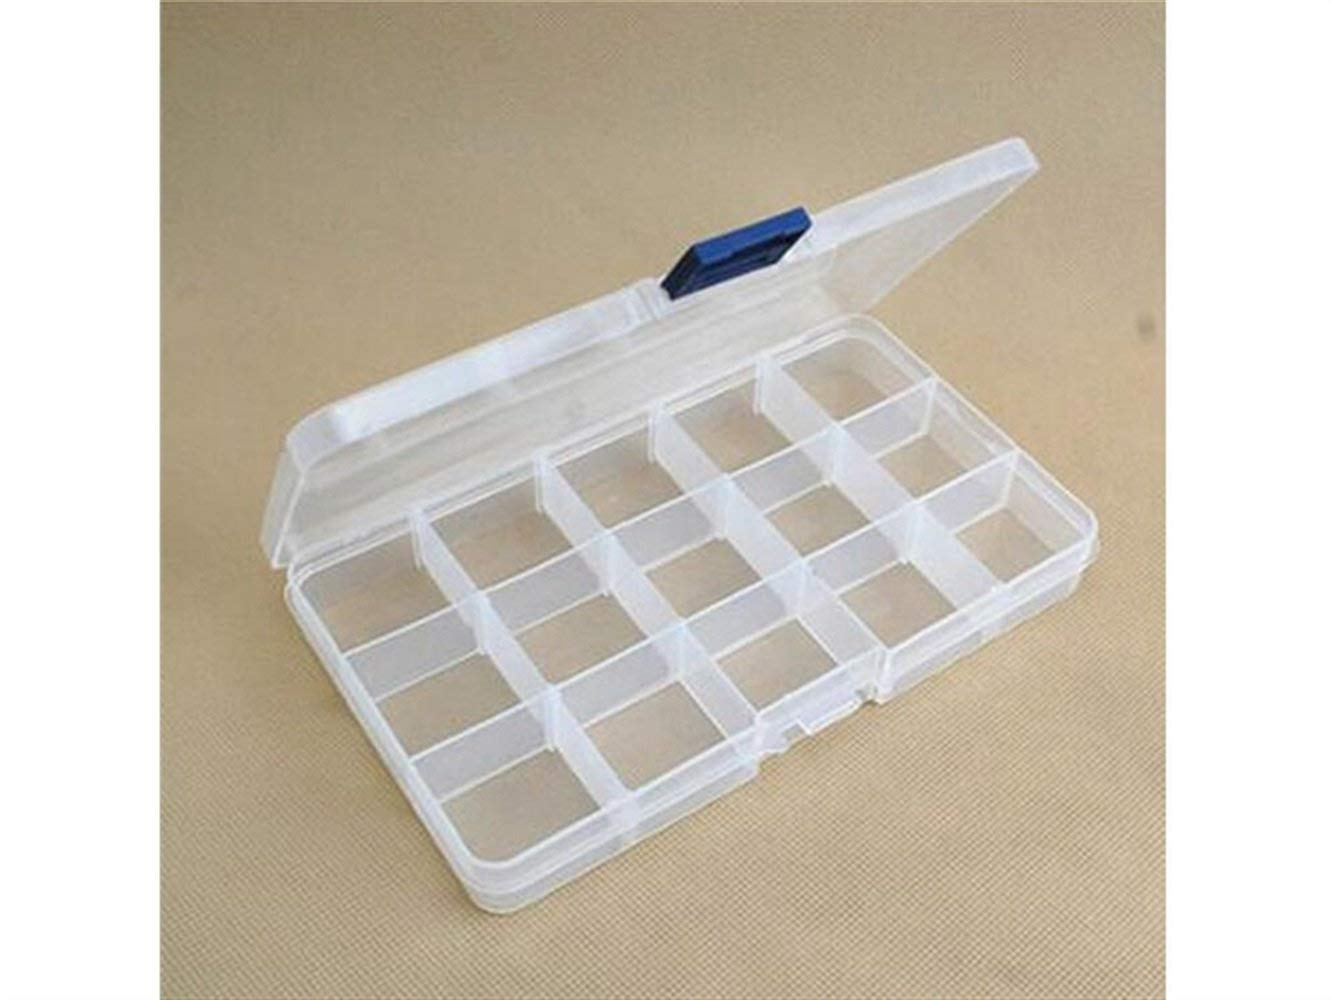 Yuchoi Perfectly Shaped 15 Grid Boxes Plastic Clear Adjustable Storage Box Jewelry Case